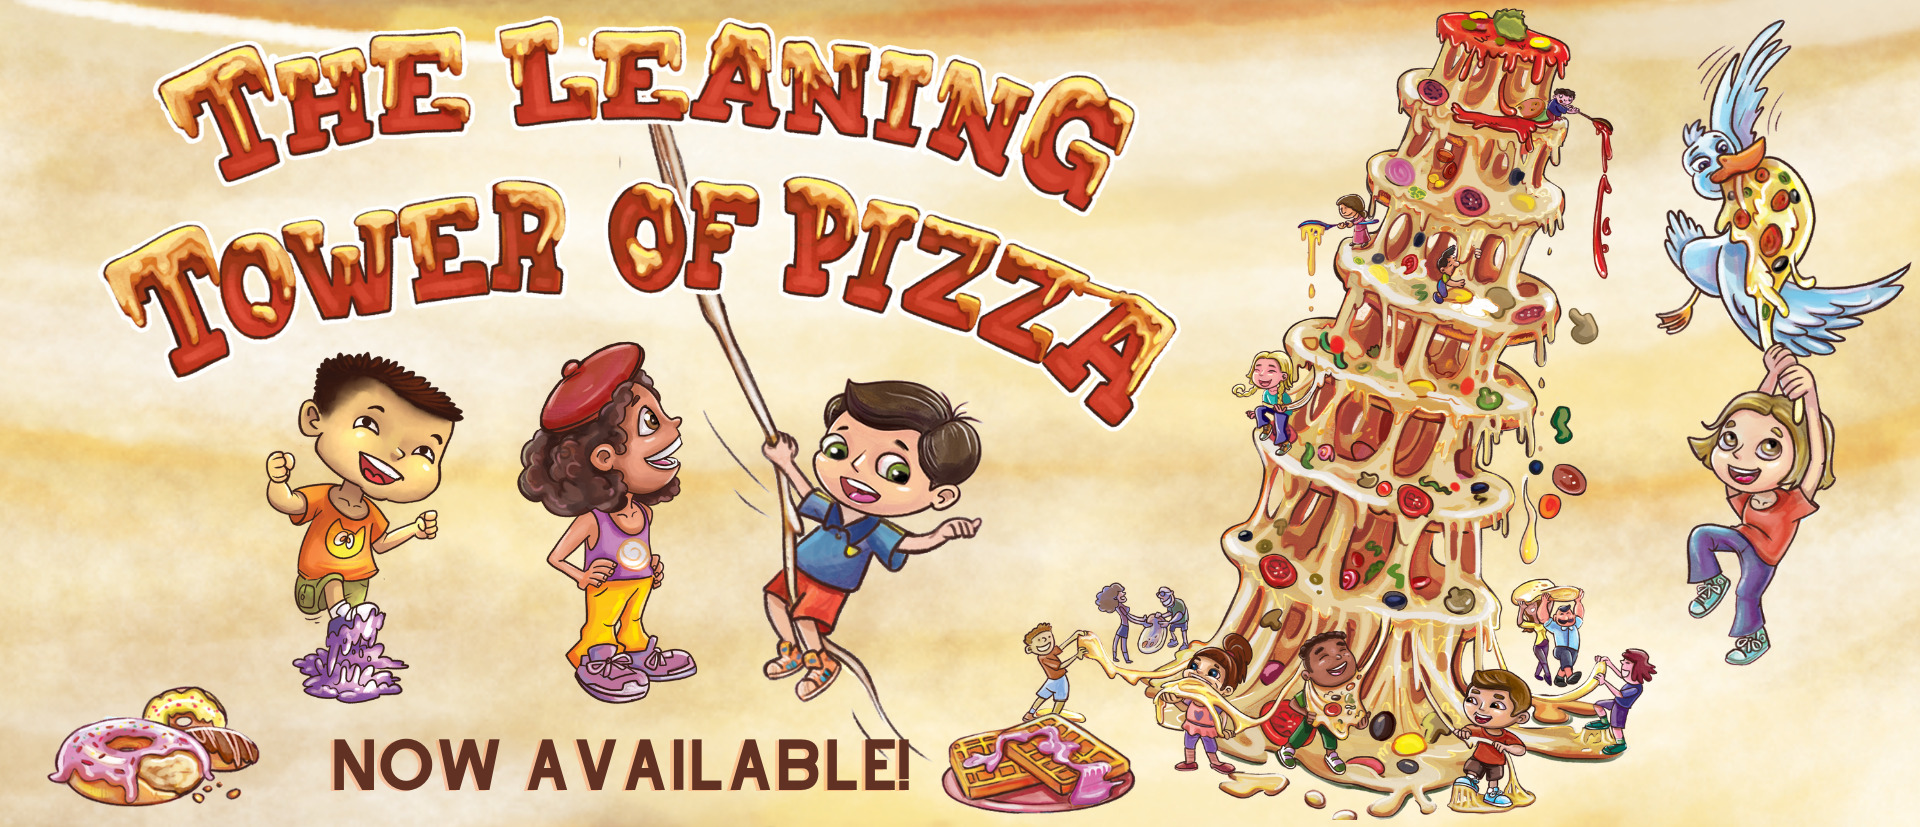 The Leaning Tower of Pizza by Derek Taylor Kent Now Available